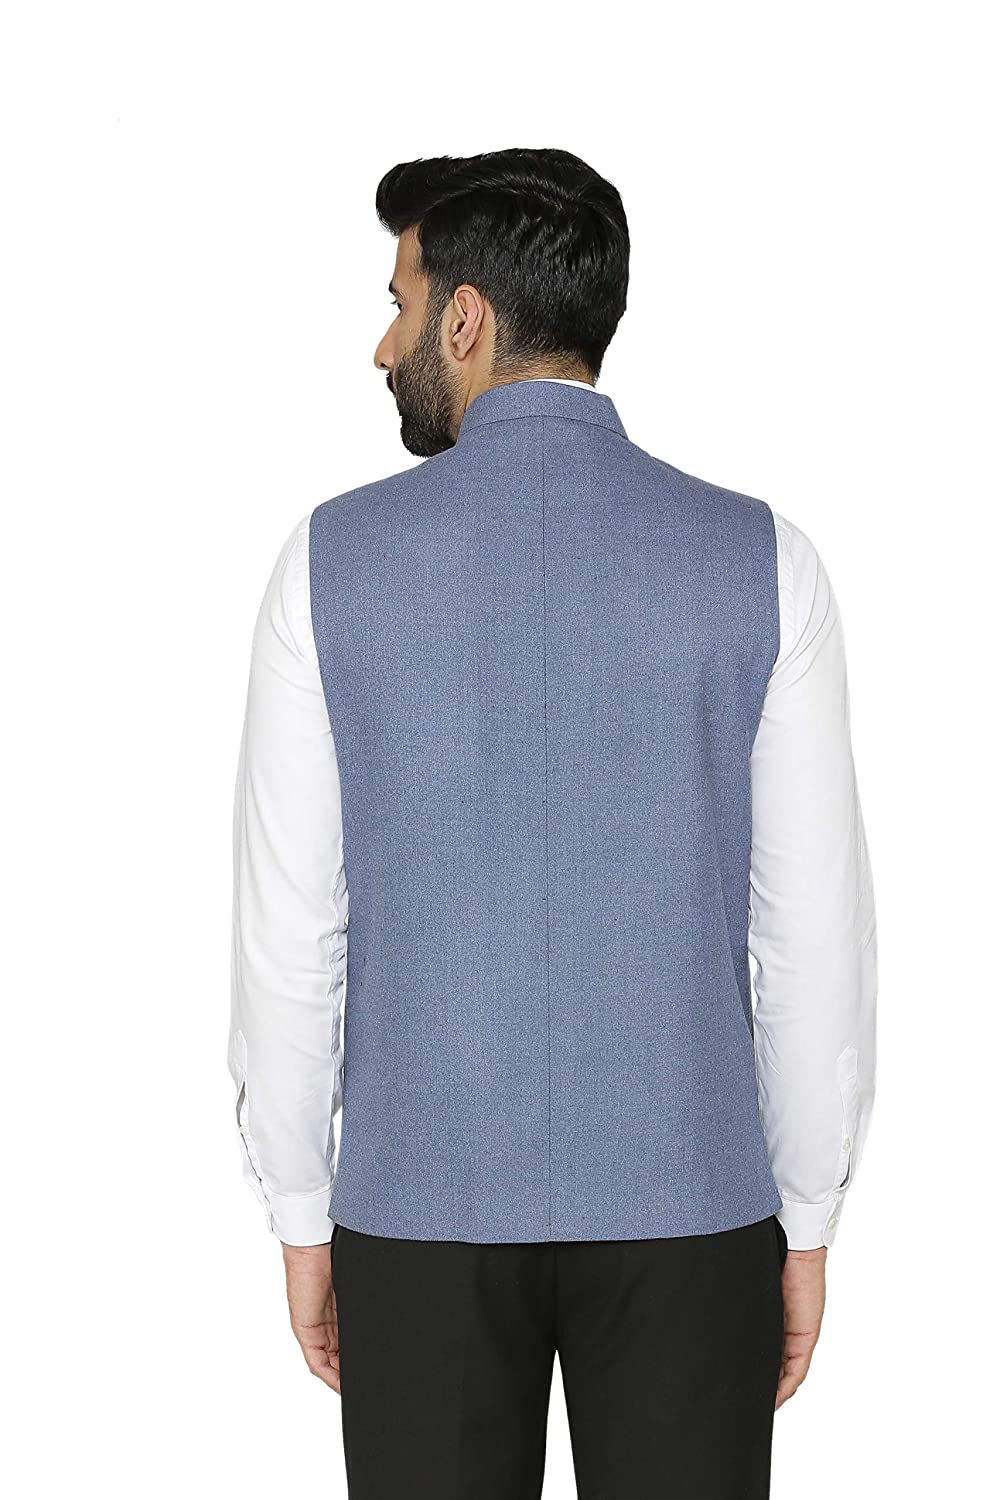 Multiple Colors Wintage Mens Tweed Wool Festive and Casual Nehru Jacket Vest Waistcoat